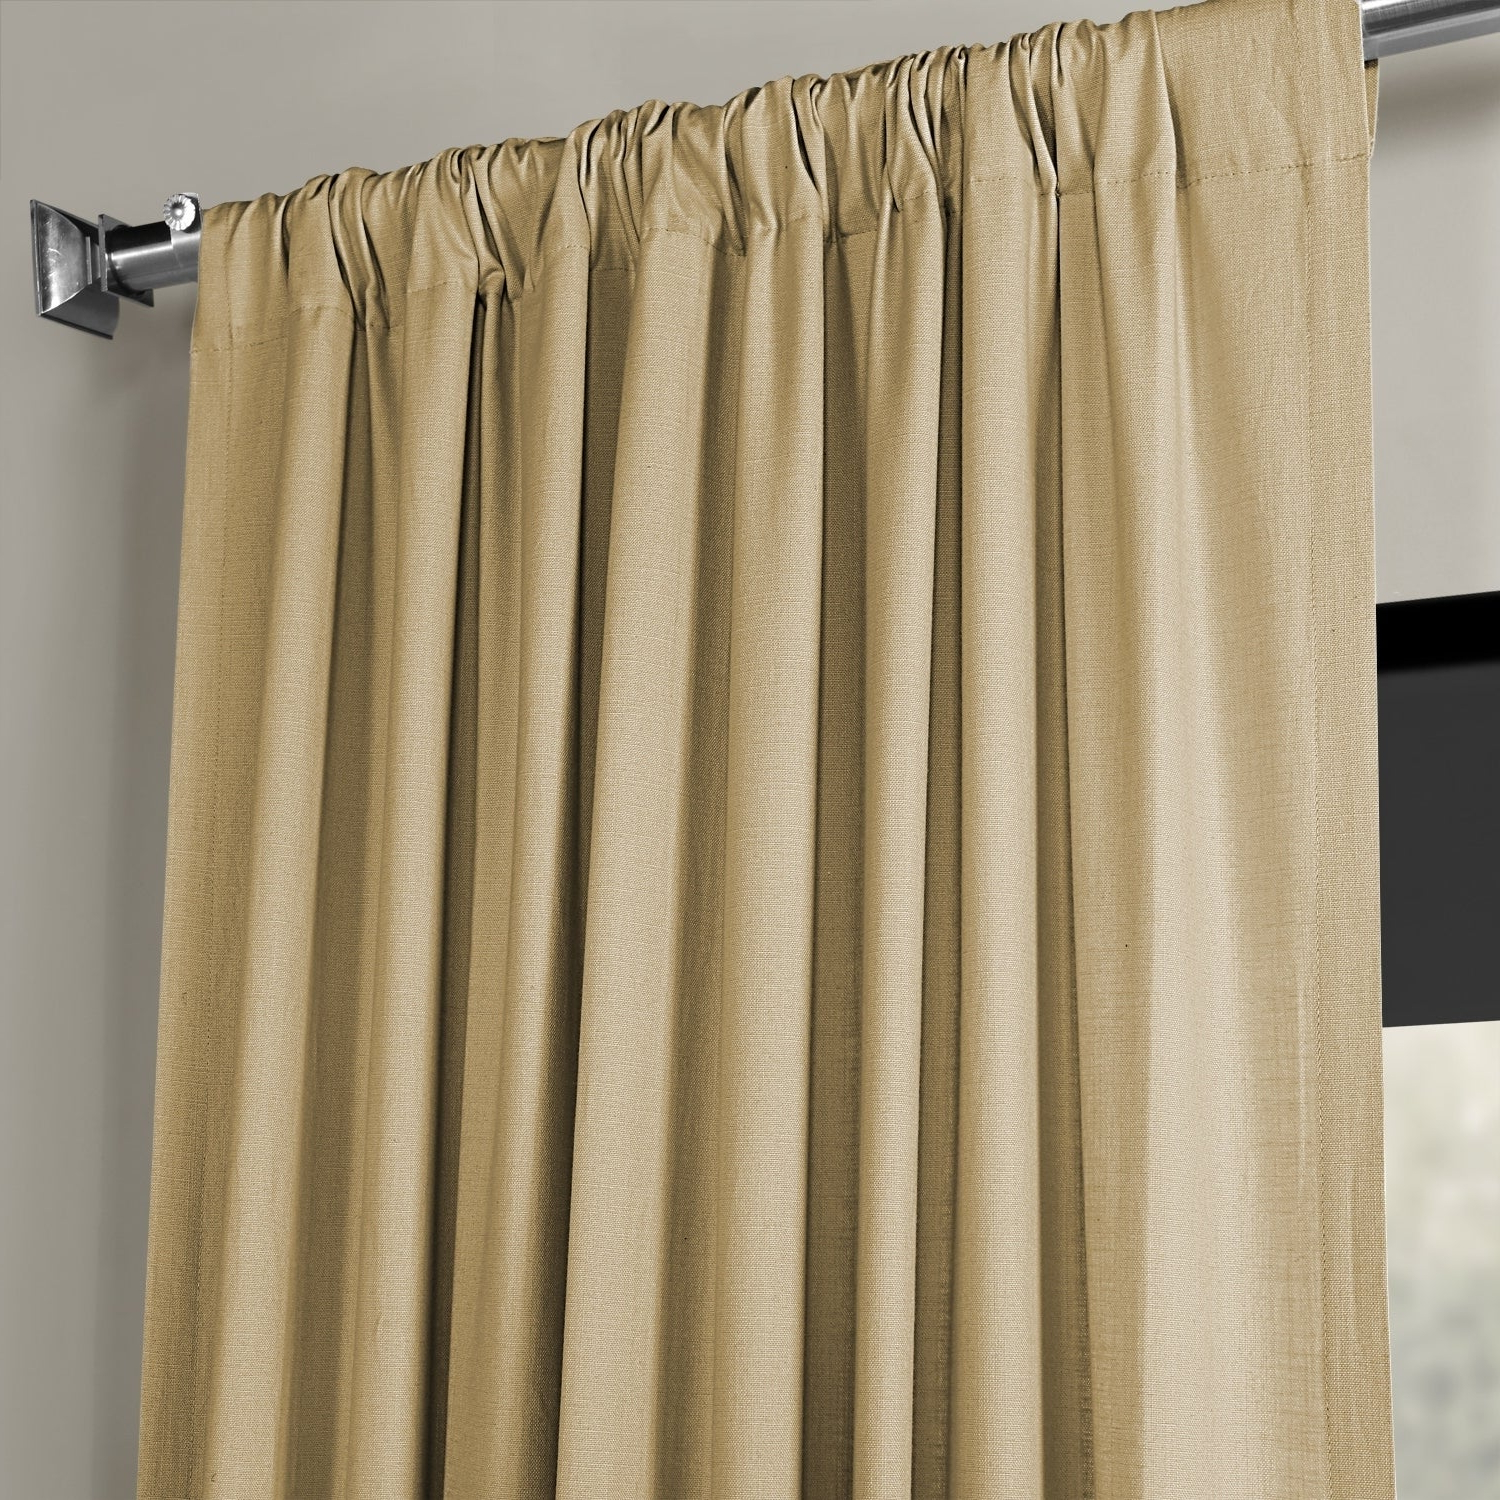 Exclusive Fabrics Solid Country Cotton Linen Weave Curtain Panel In Most Up To Date Solid Country Cotton Linen Weave Curtain Panels (Gallery 12 of 20)